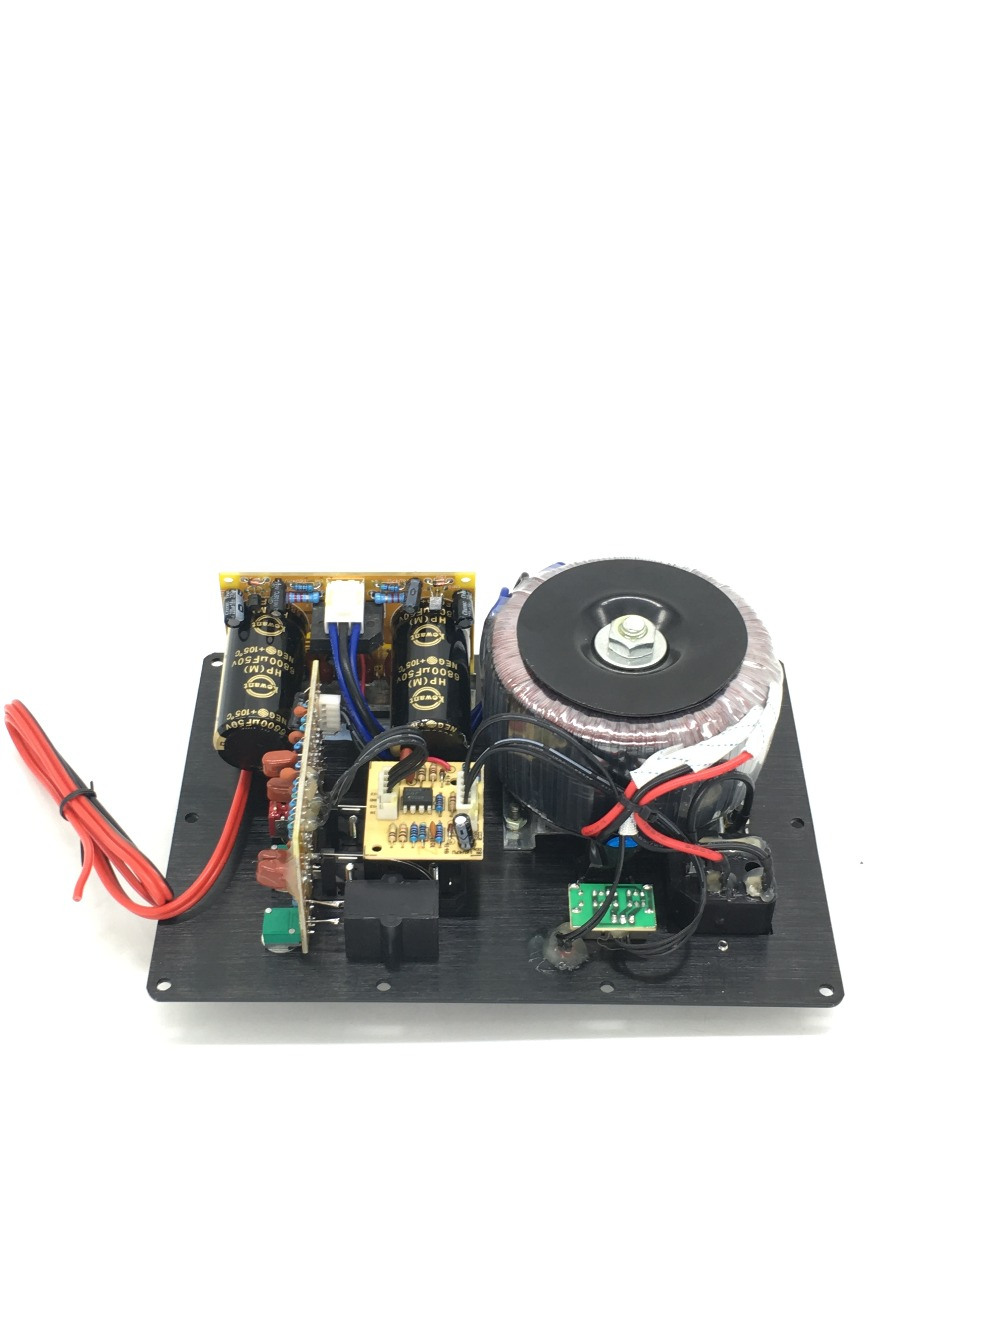 Tda7293 Amplifier For Subwoofer 100w Power 110v Wiring Schematic Diagram 300w Img 2139 2151 2146 2147 2133 2142